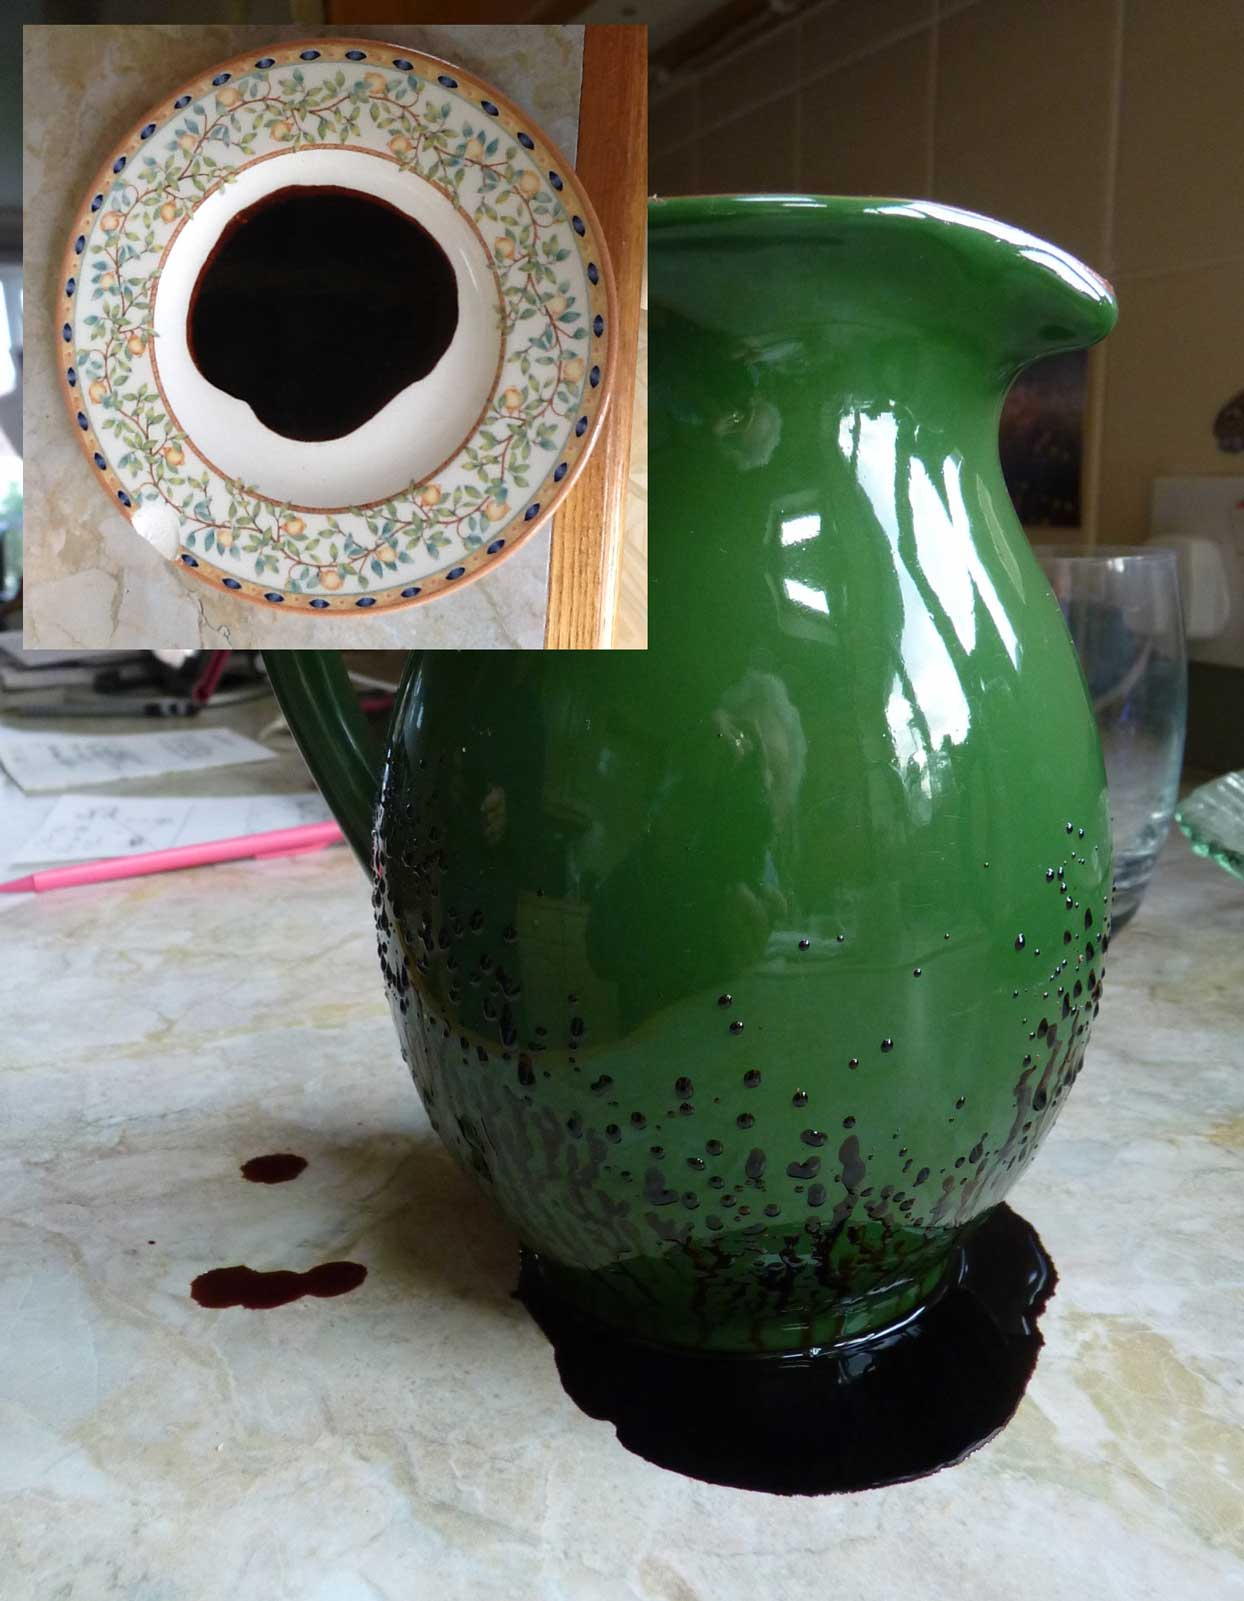 This pitcher is oozing a black goo after water sat in it overnight